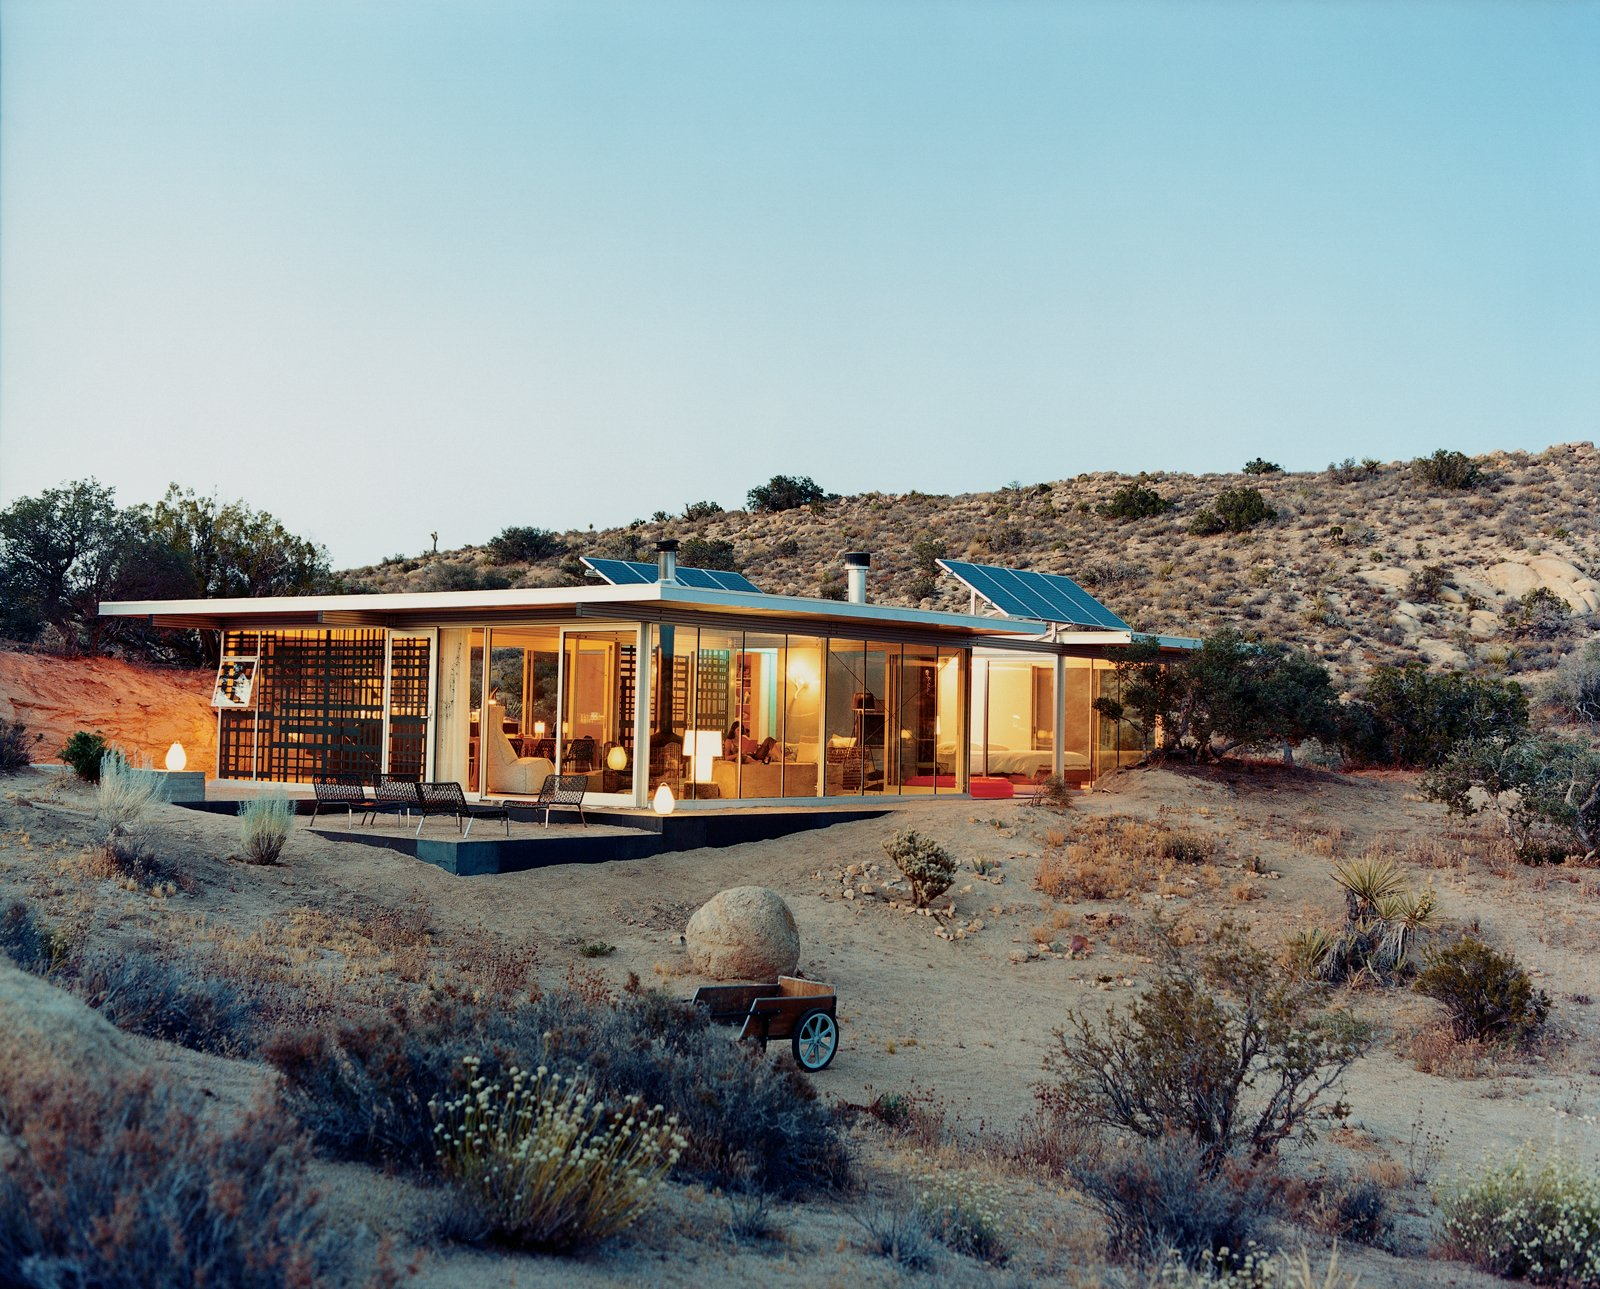 The iT House is an exploration of the couple's architectural ideas, built with the help of friends over many weekends away from Los Angeles. It brings the precise and the cool together with the wild and untamed. Tagged: Exterior, House, Flat RoofLine, Metal Siding Material, and Glass Siding Material.  Best by DAVE MORIN from iT House, Joshua Tree